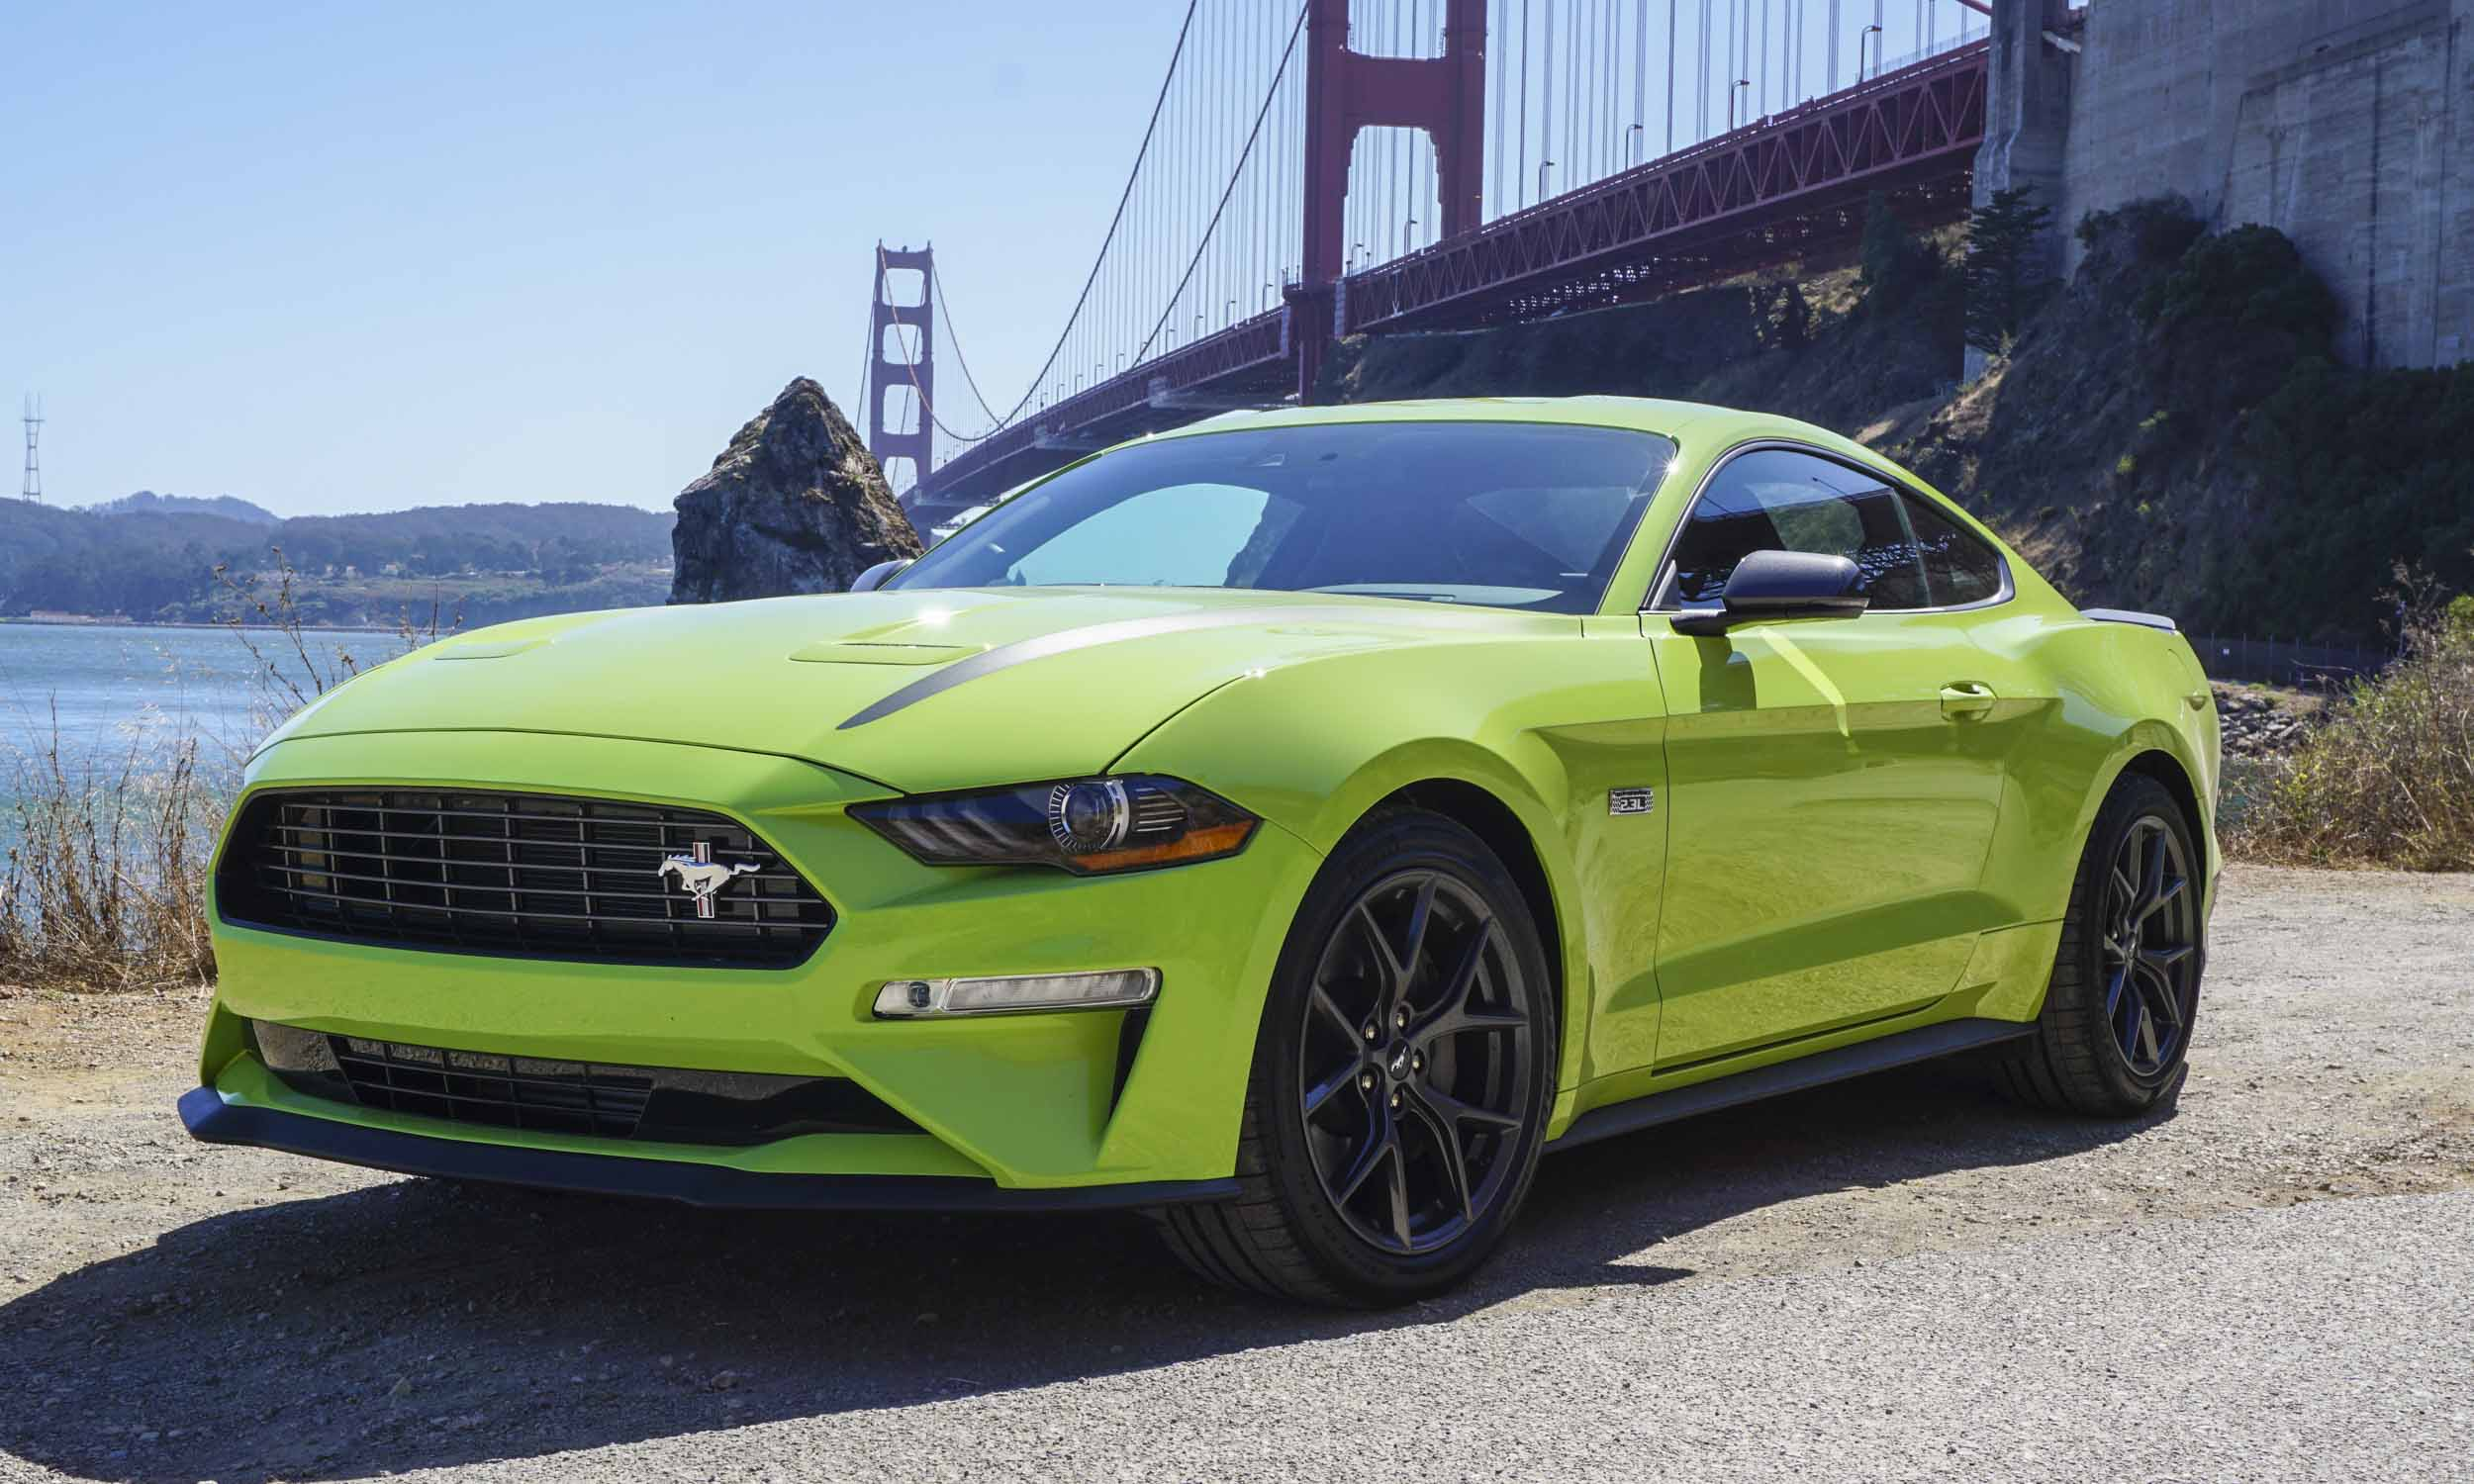 2020 Ford Mustang Gt Review.2020 Ford Mustang Ecoboost Hpp First Drive Review Autonxt